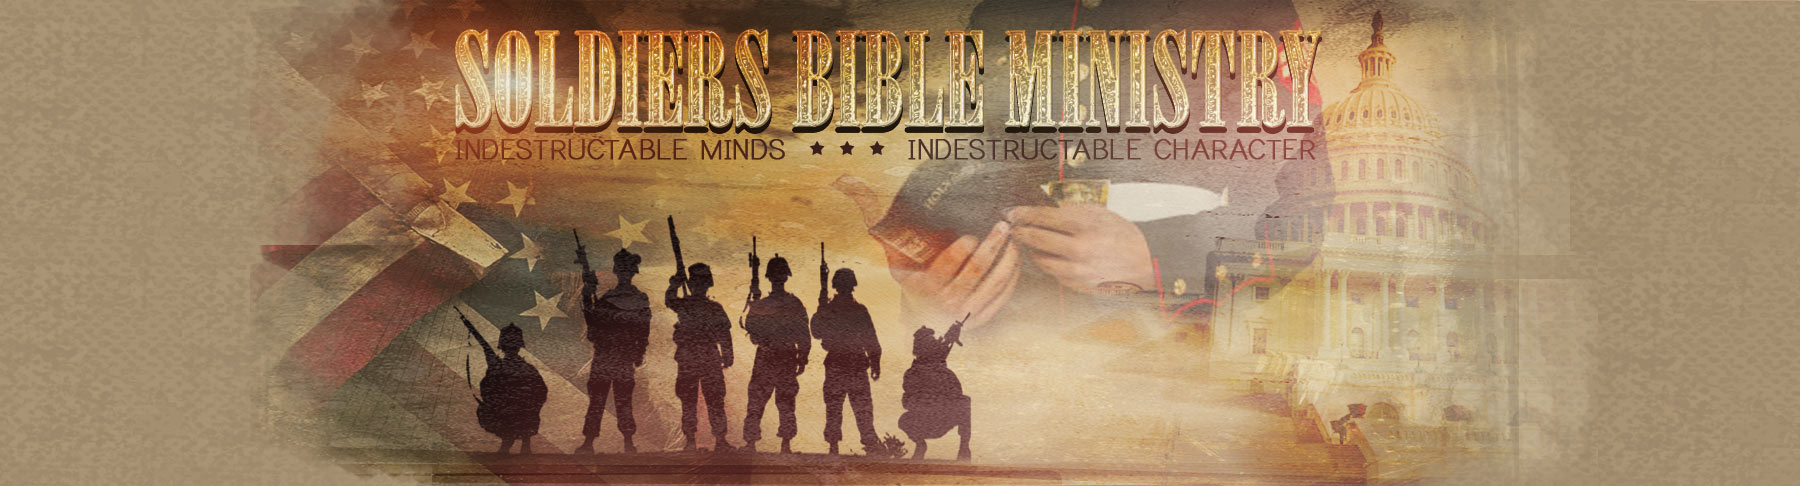 Soldiers Bible Ministry   Free Bibles & Spiritual Resources   Equipping Military Chaplains logo